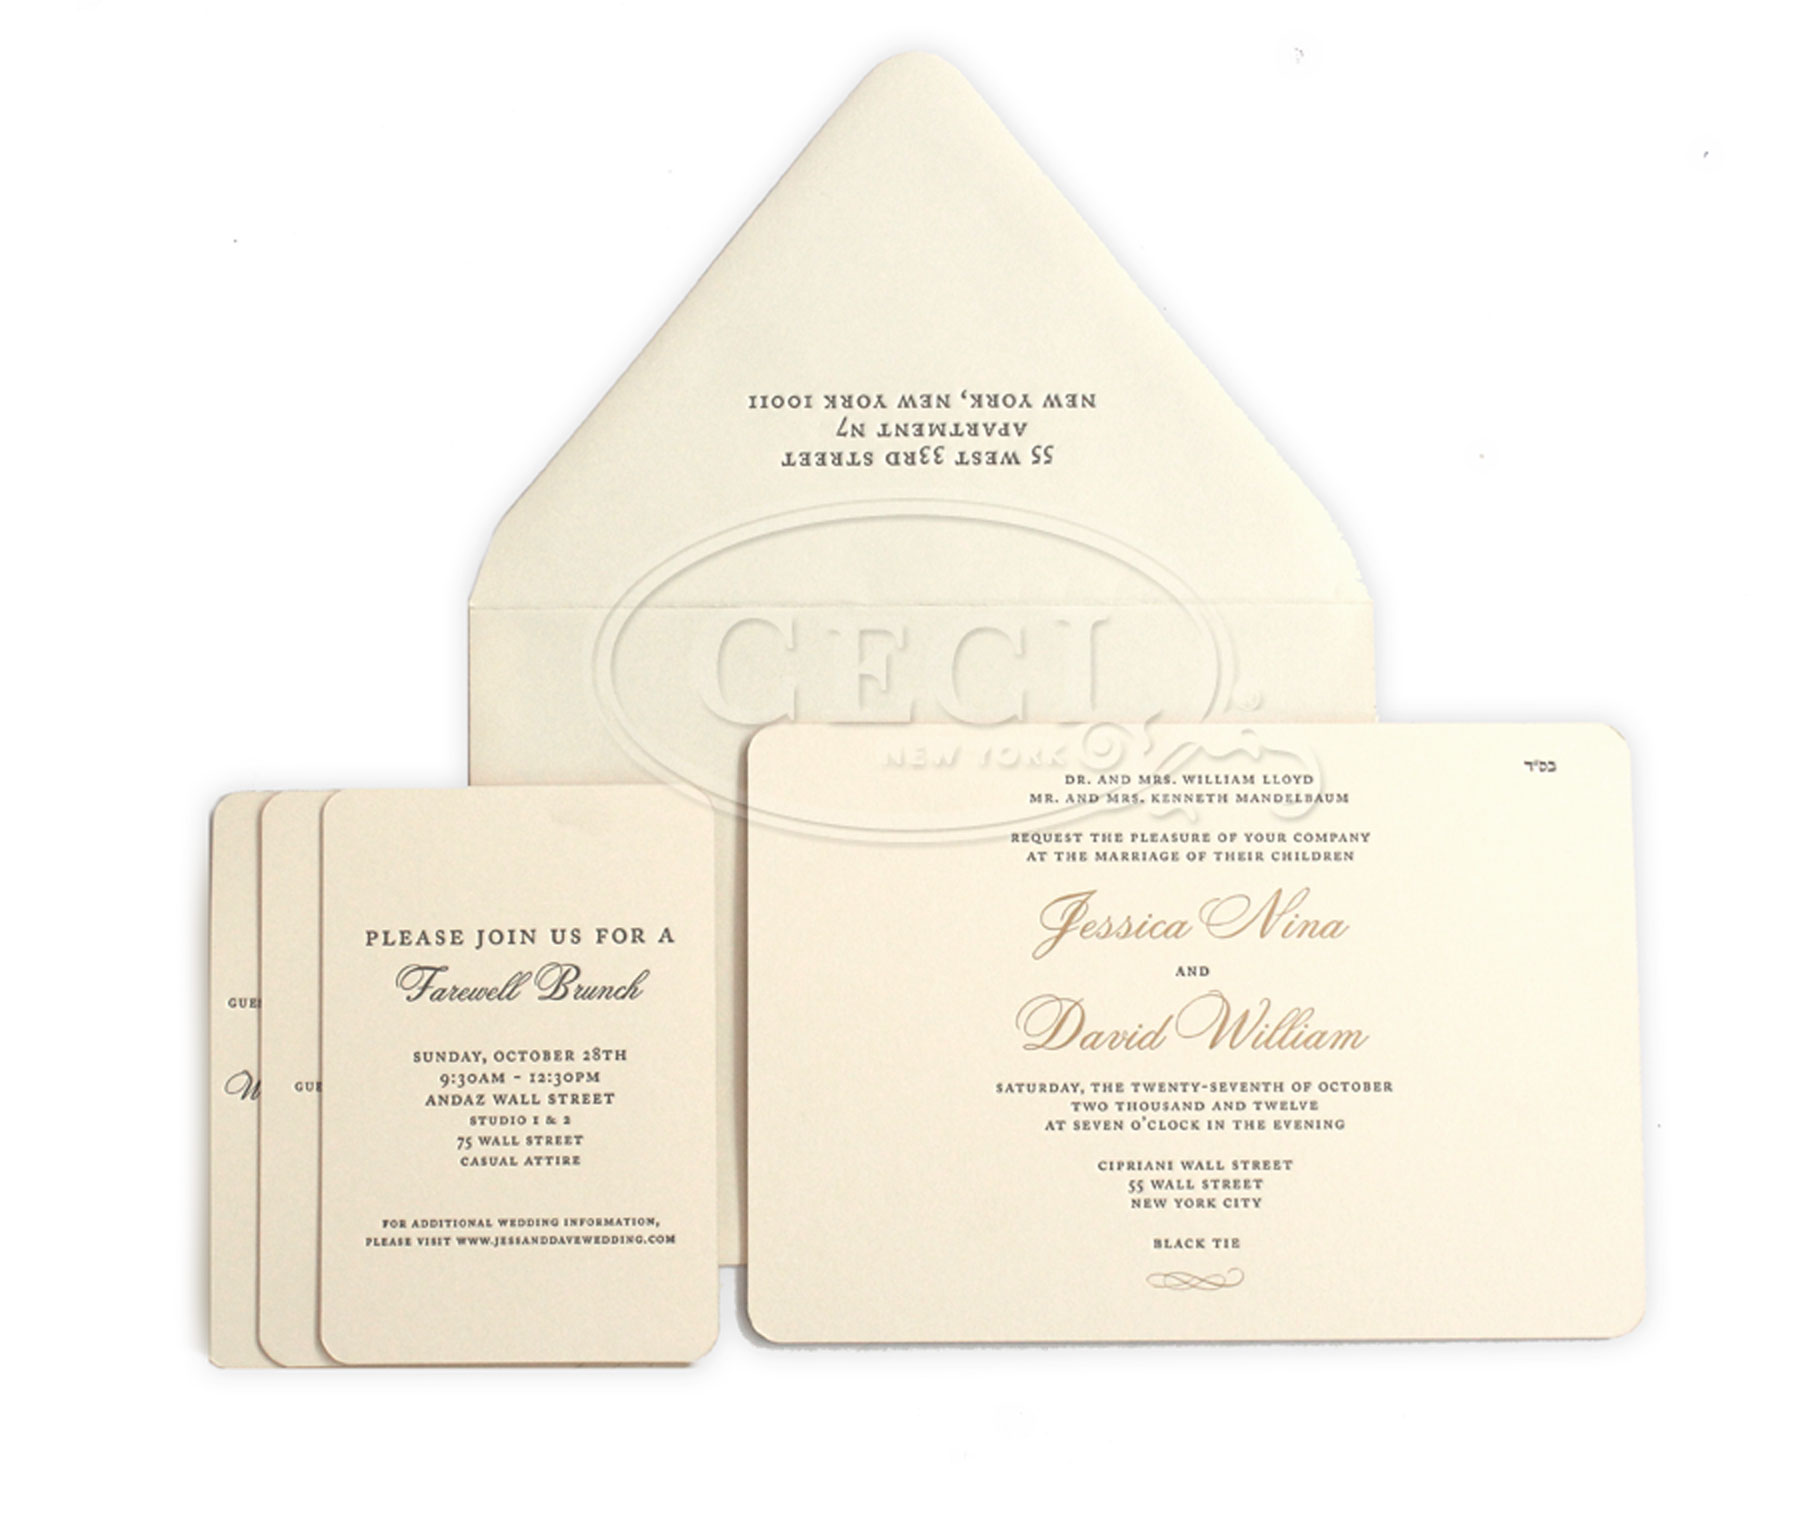 Luxury Wedding Invitations by Ceci New York - Our Muse - Classic, Elegant New York Wedding at Cipriani - Be inspired by Jessica and David's classic, elegant New York wedding at Cipriani - wedding, invitation, letterpress printing, ceci new york, rounded edges, gold, ivory